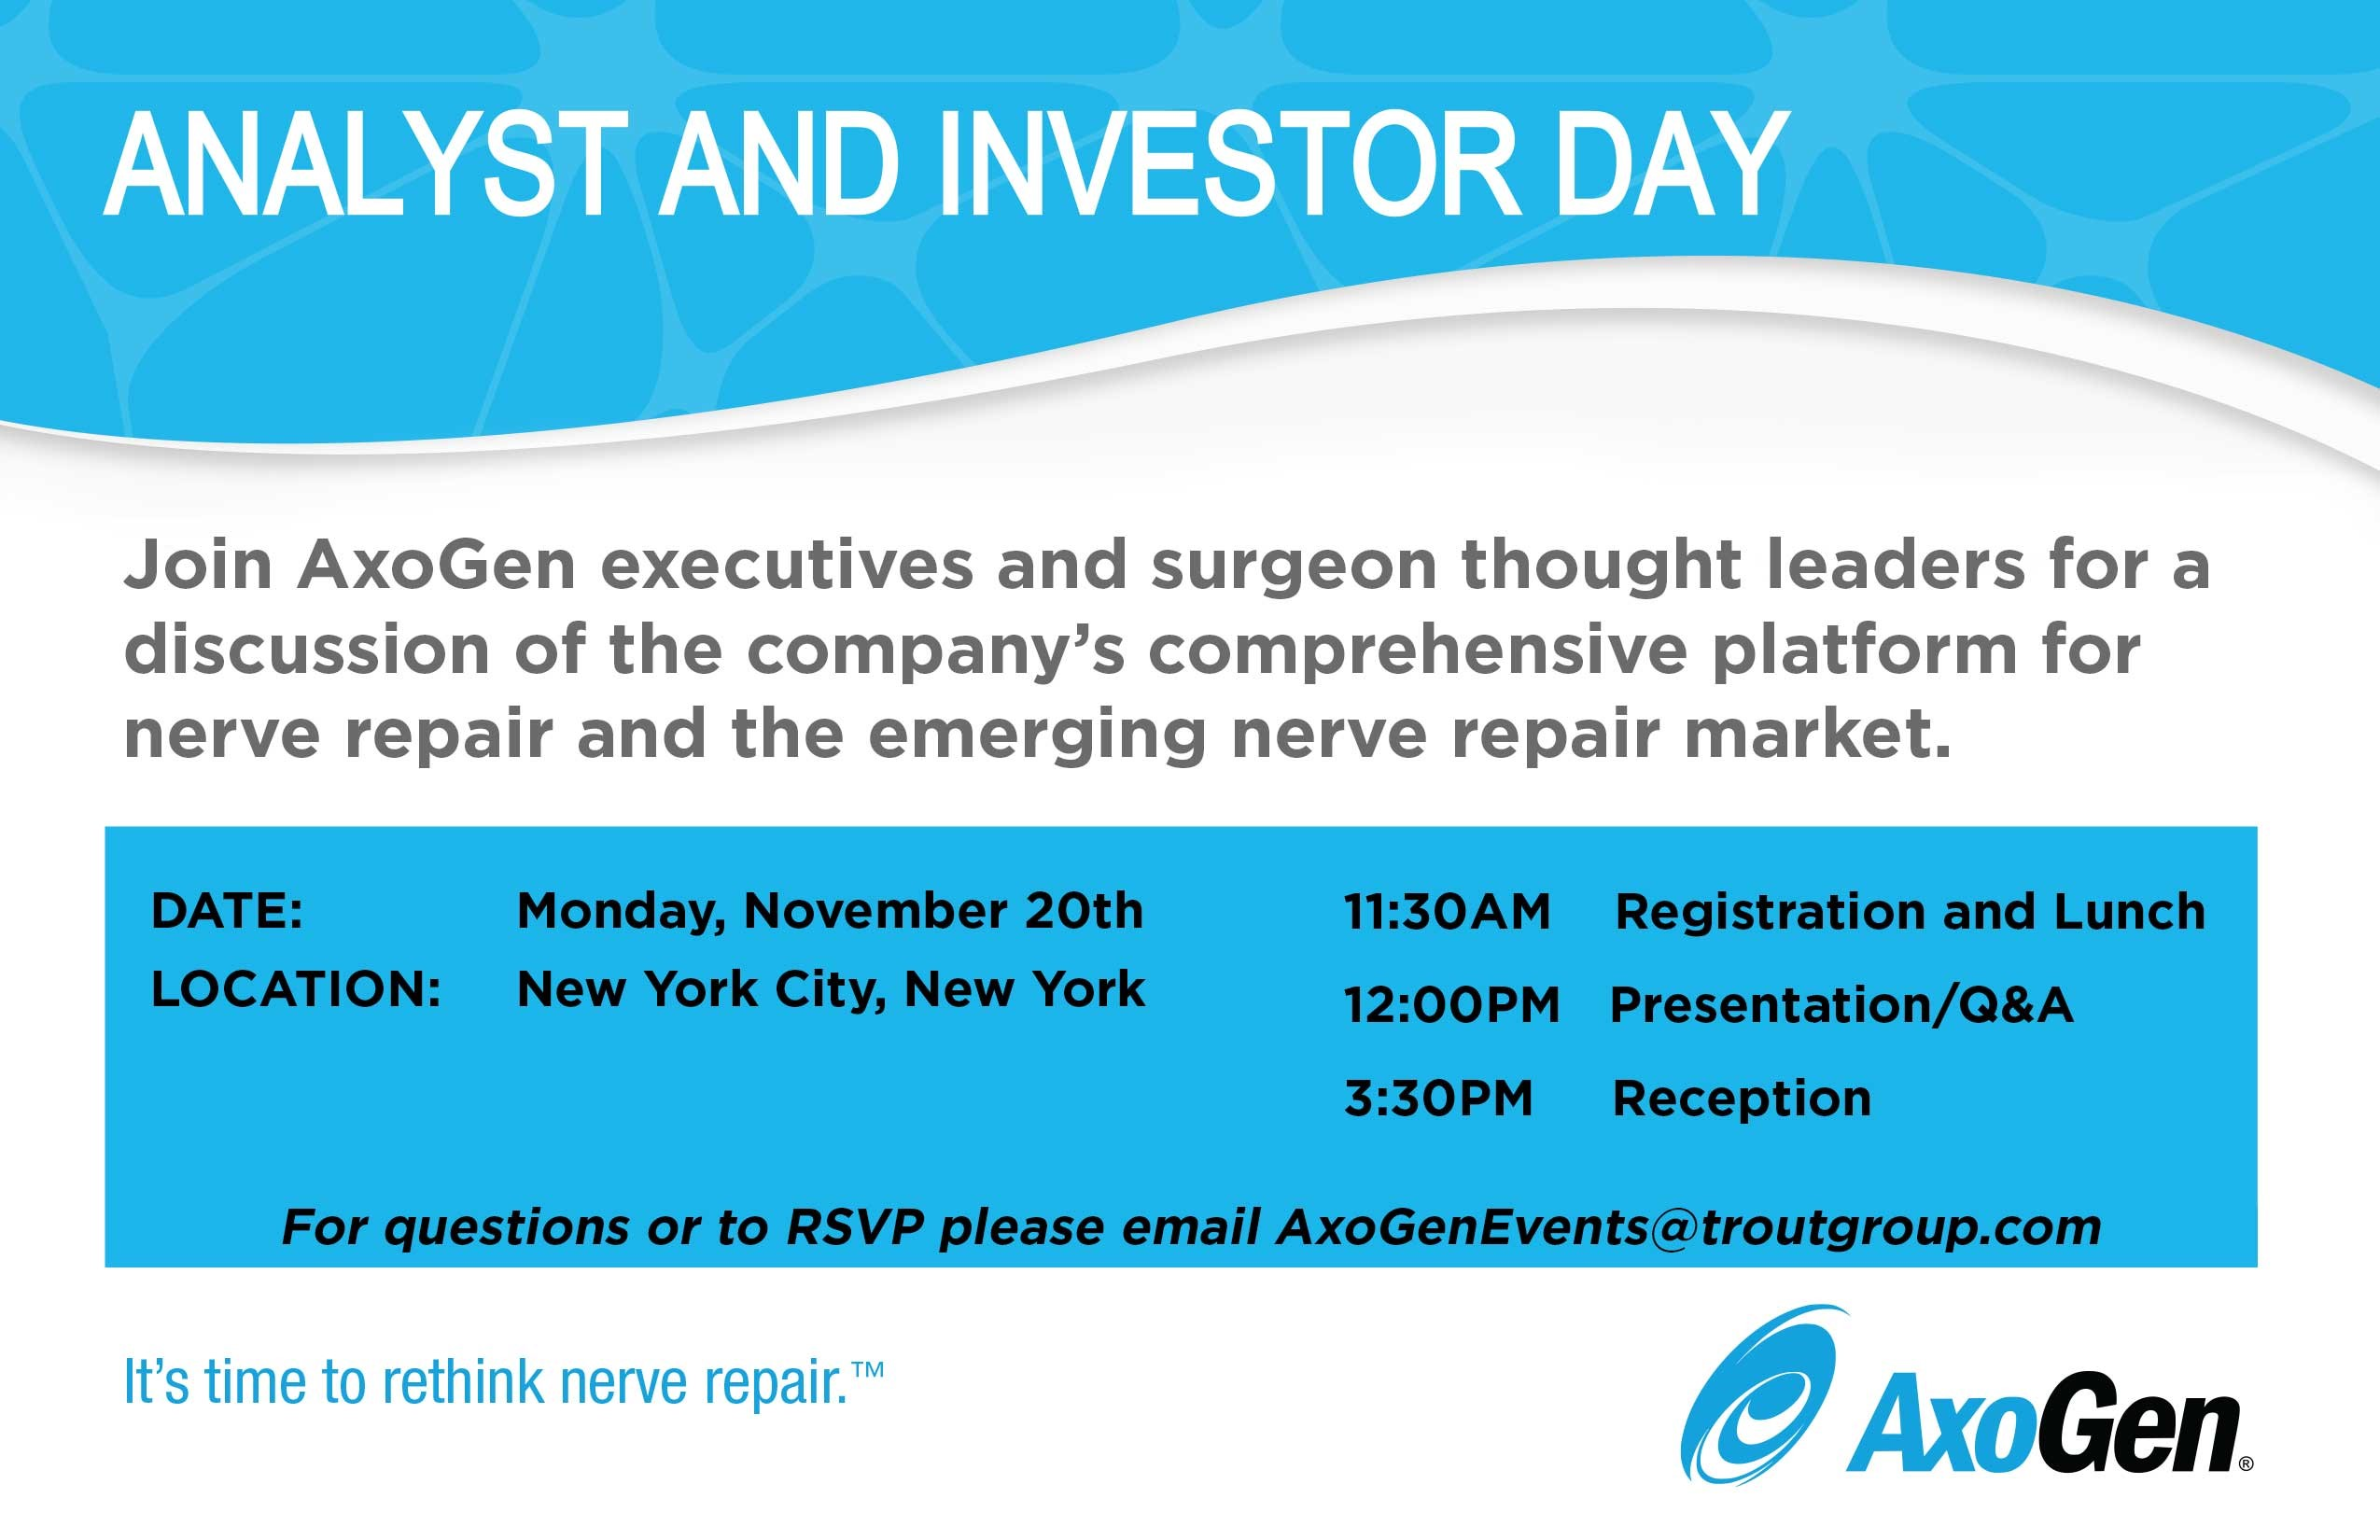 Analyst and Investor Day